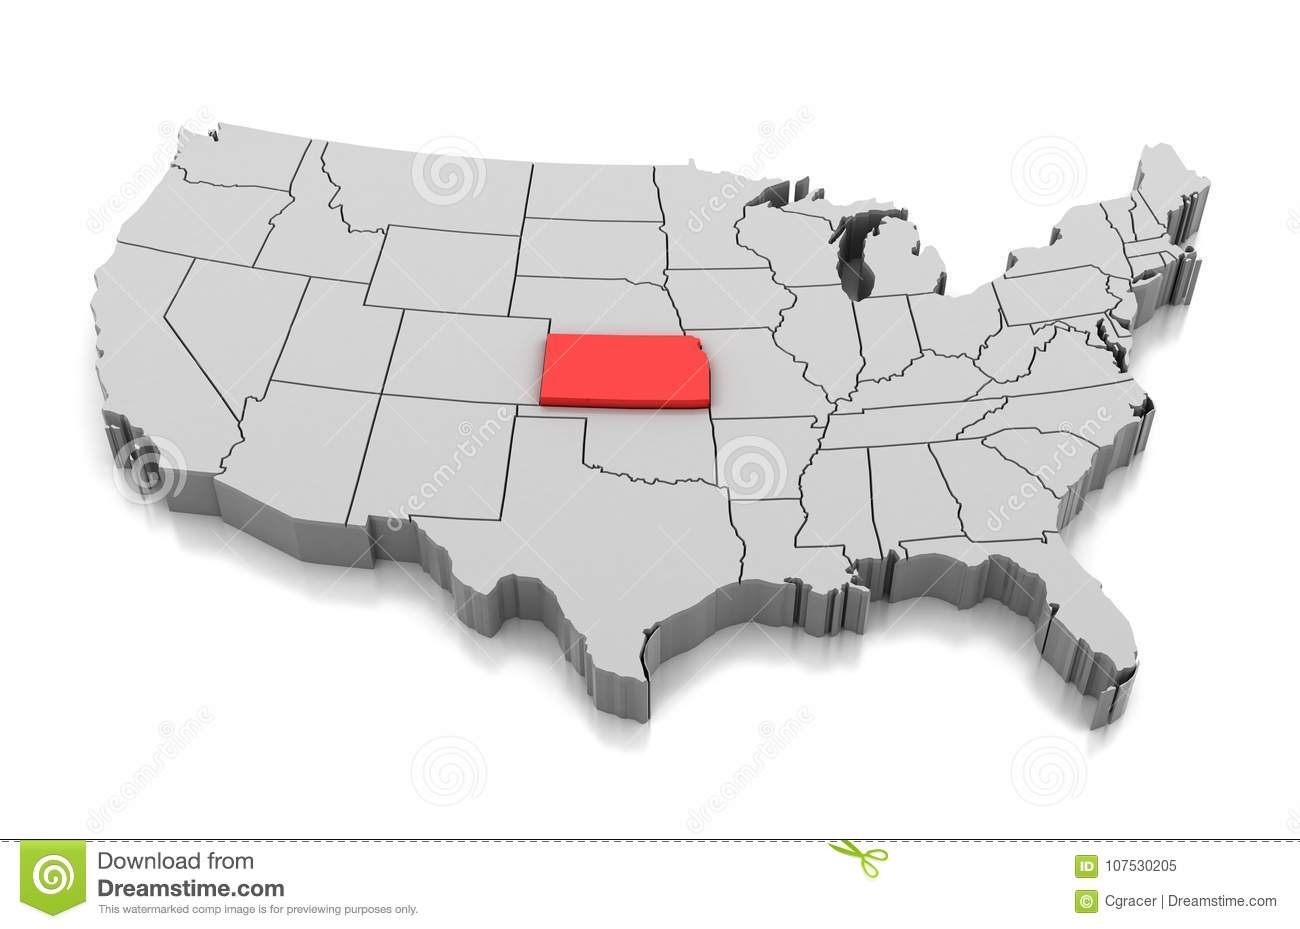 Map of Kansas state, USA stock illustration. Illustration of country Kansas On The Map Of Usa on state of kansas usa, kansas map with cities, the 50 states map with the usa, kansas statehood, kansas state map usa, philadelphia map usa, boston map usa, kansas on us map,